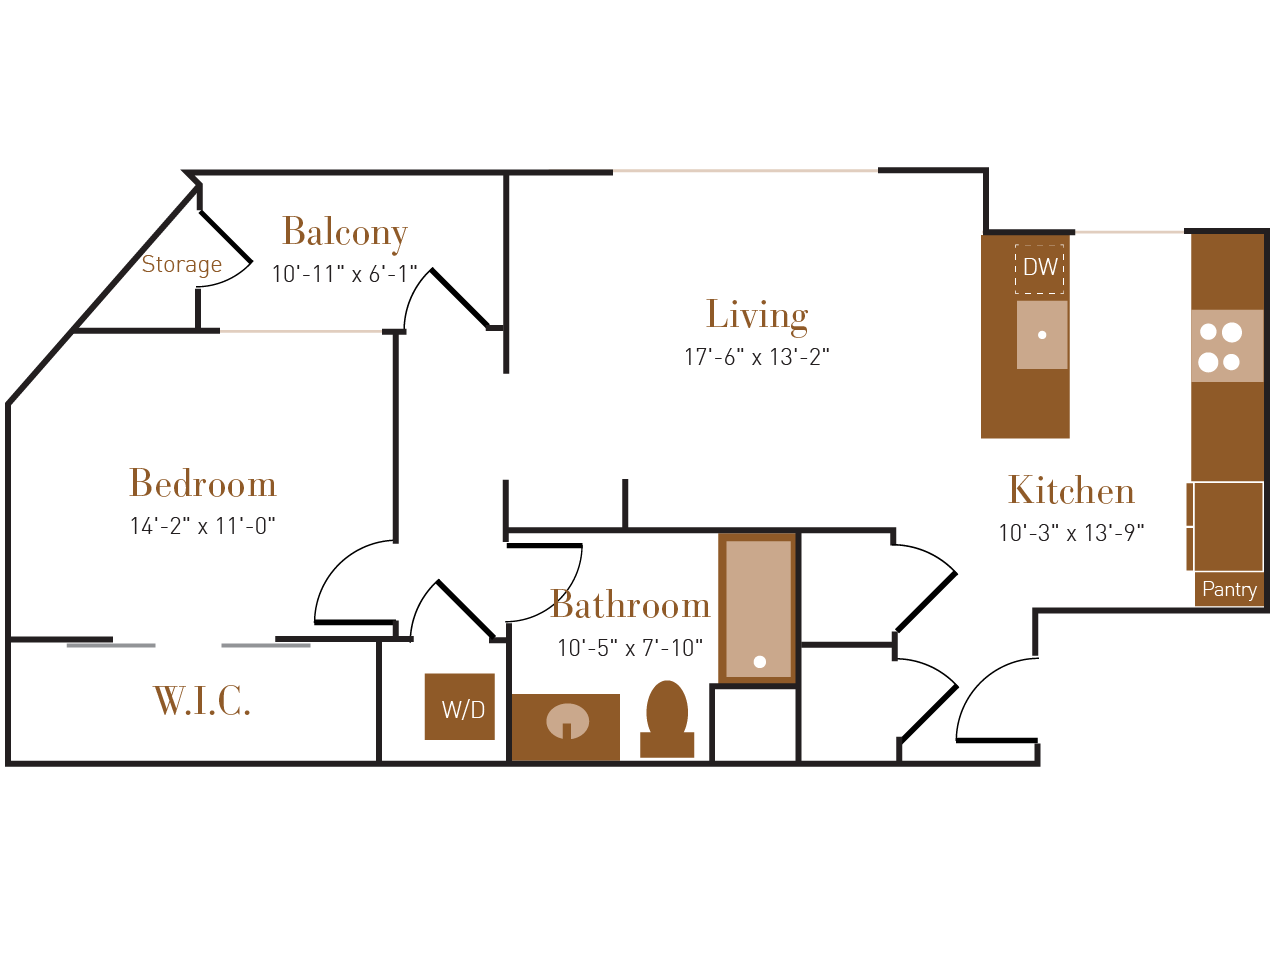 A Seven floor plan diagram. One bedroom, one bathroom, an open kitchen and living area, a balcony, and a washer dryer.